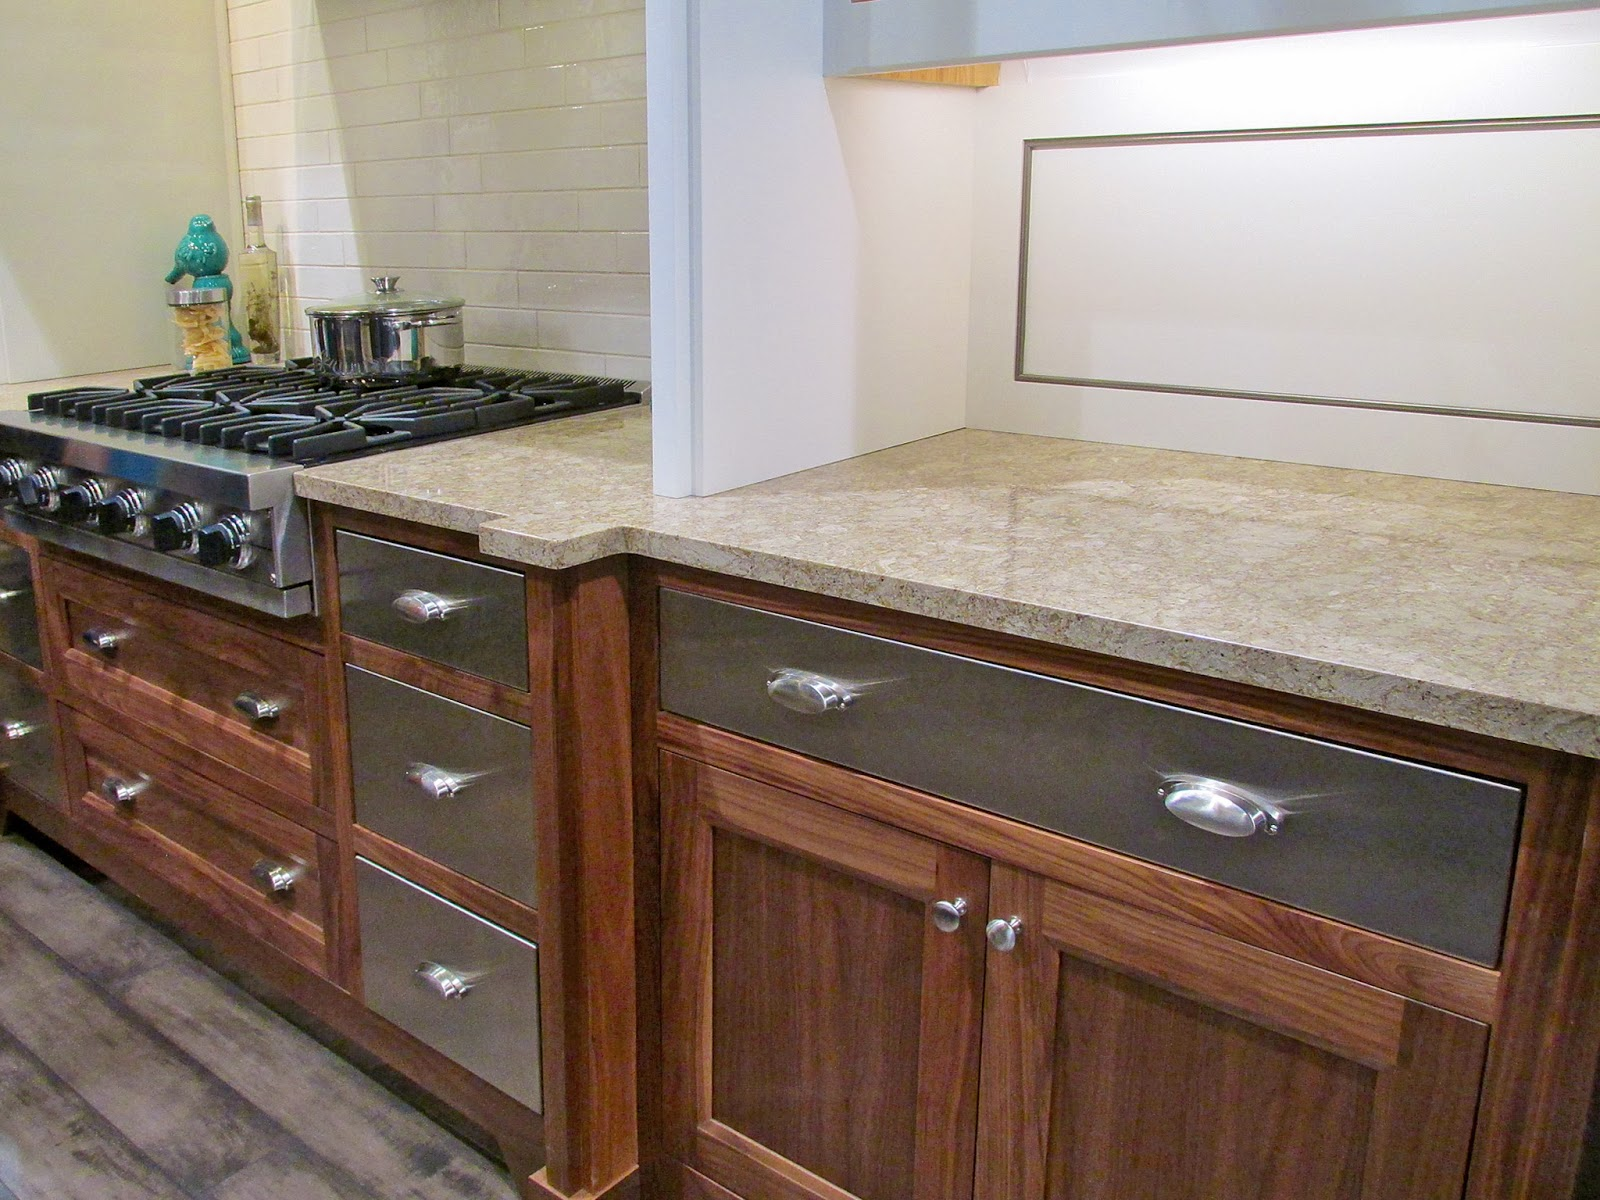 Smooth stainless drawers accentuate the wood grain. What a way to mix rustic and modern!